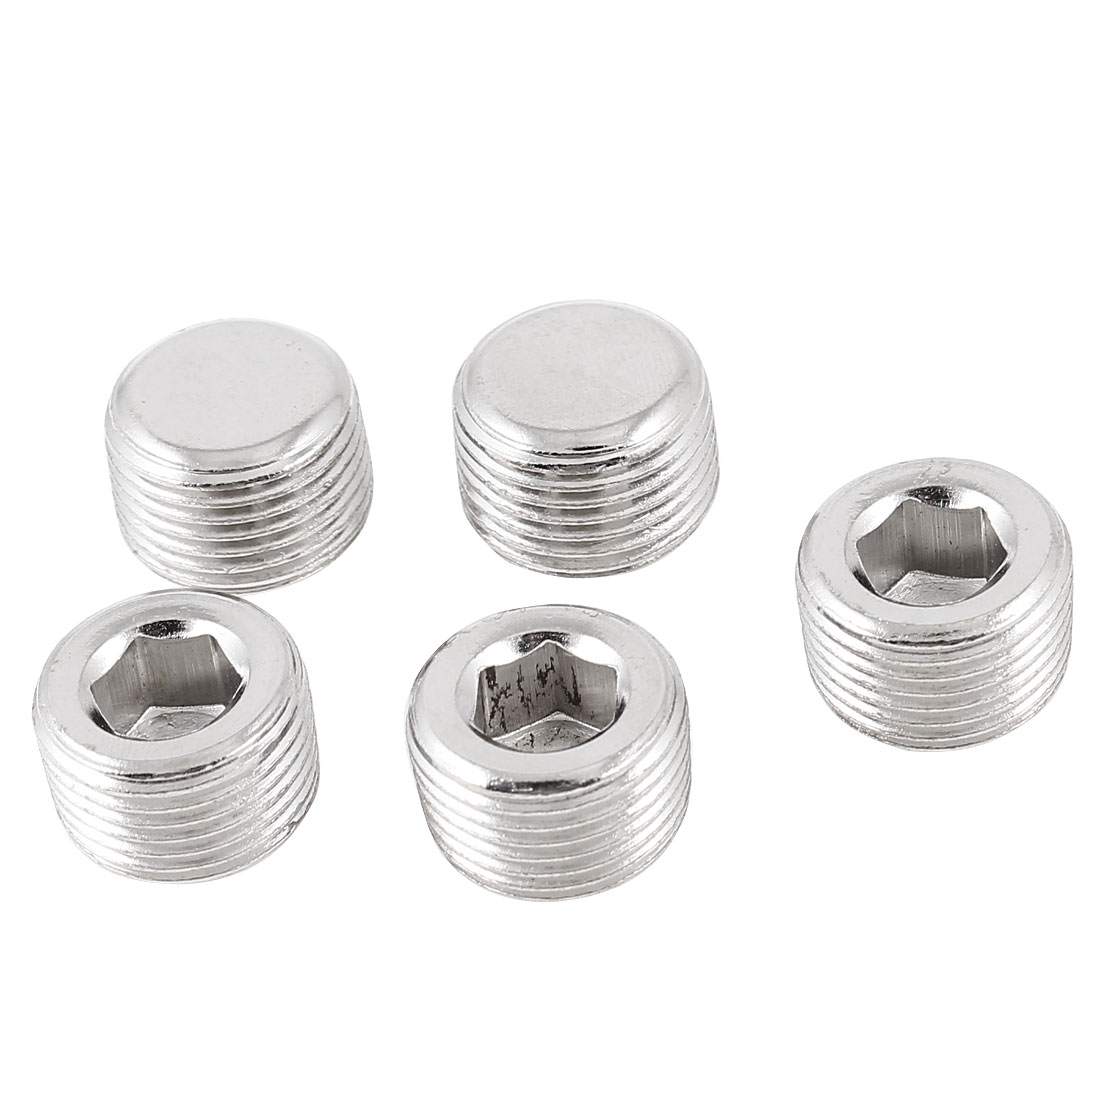 5Pcs Internal Hex Head Pneumatic Pipe Fittings Socket Caps 16mm 3/8PT Male Threaded